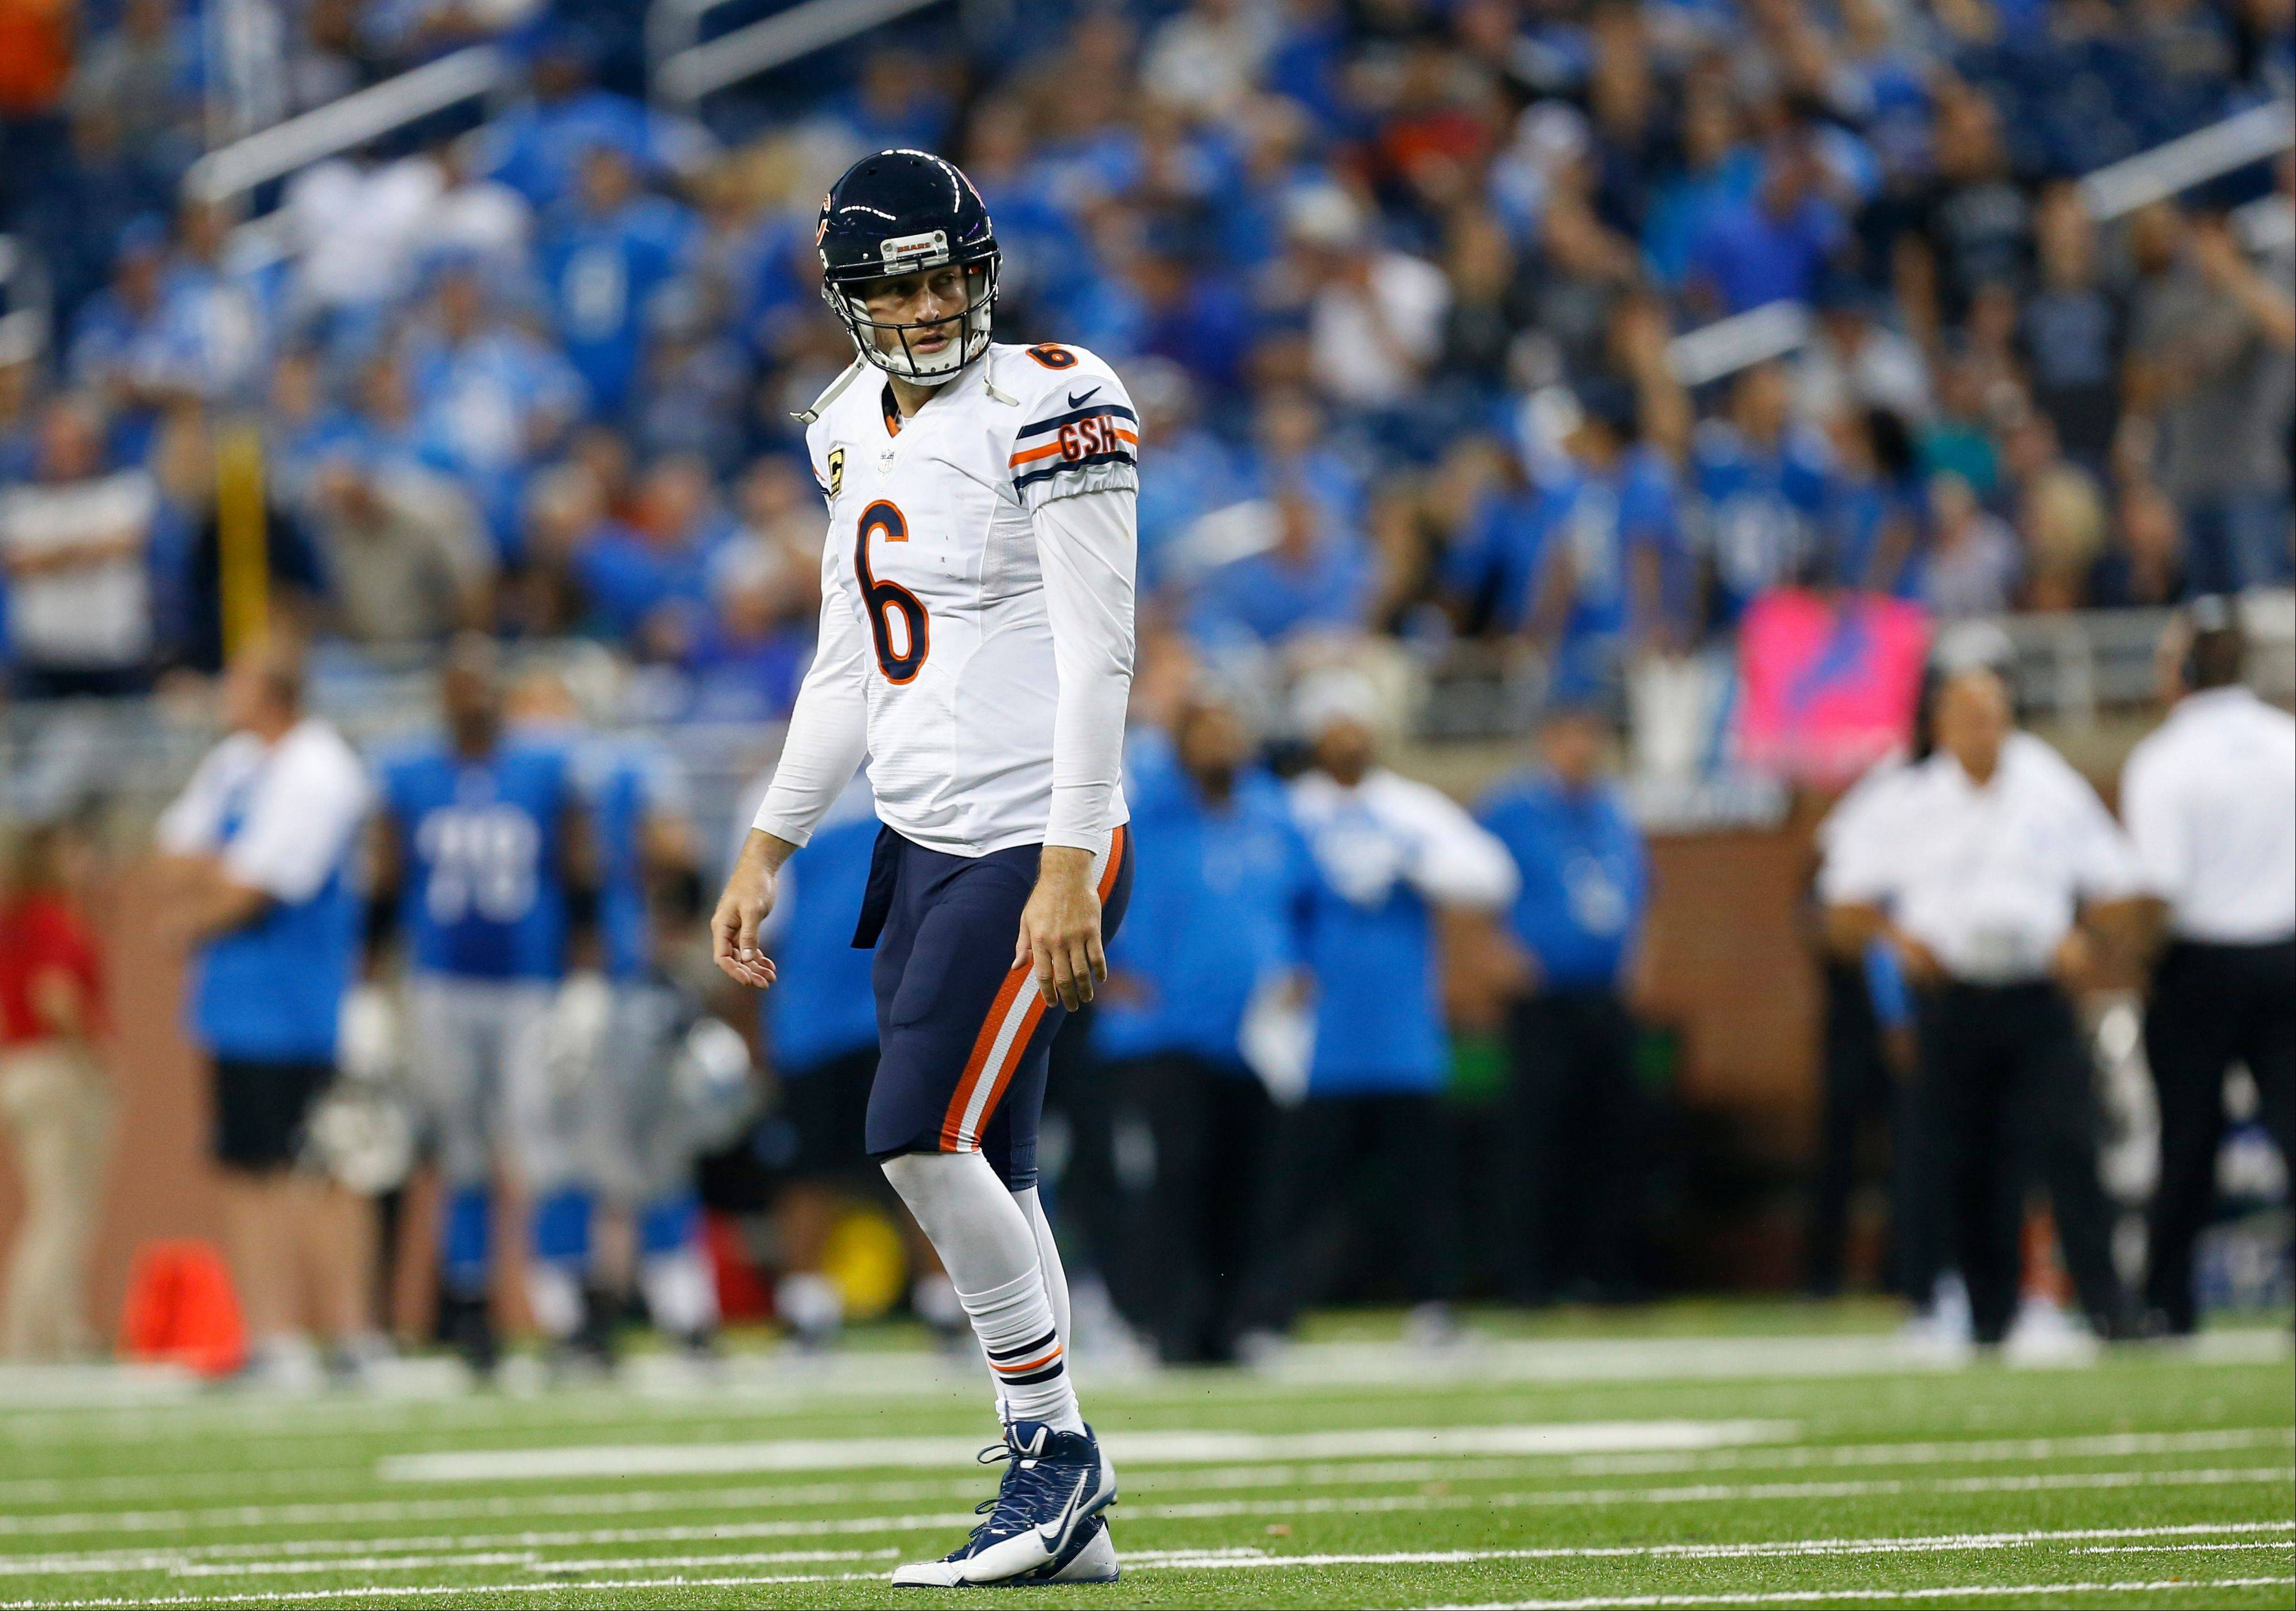 Bears quarterback Jay Cutler walks back to the bench during the fourth quarter of Sunday�s loss to the Lions at Detroit.